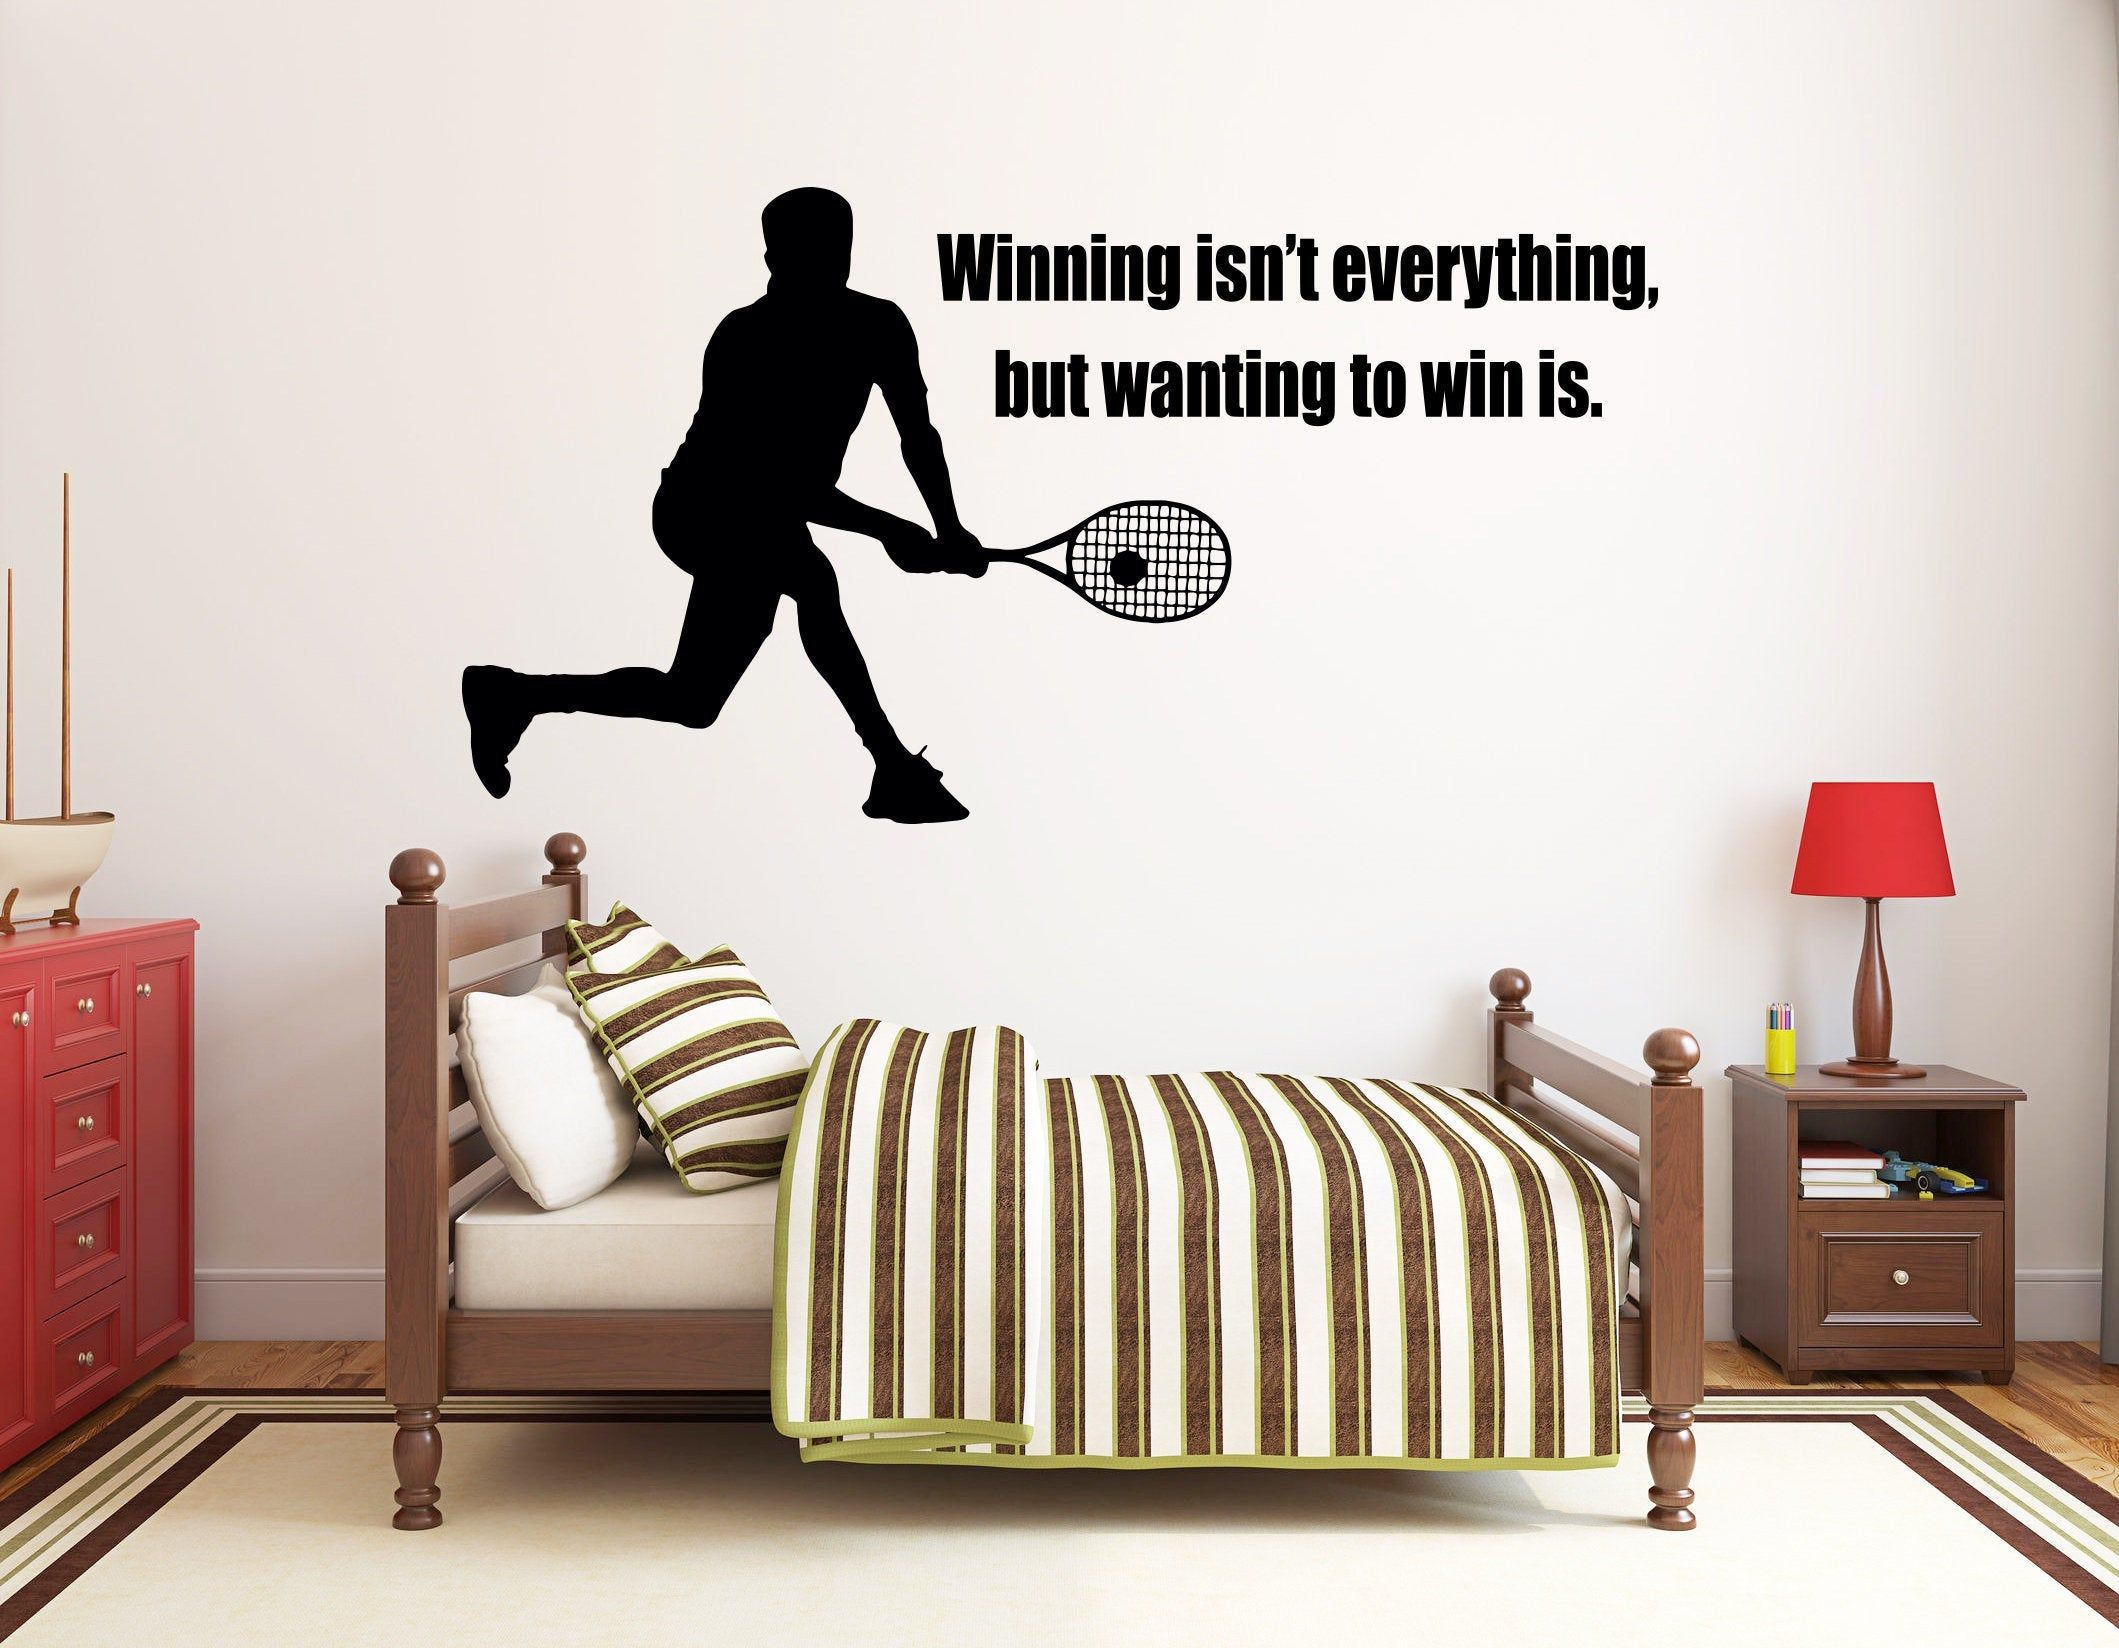 Tennis Wall Decal Tennis Wall Decor Tennis Wall Sticker Etsy In 2020 Wall Decals Custom Wall Decal Kids Wall Decals